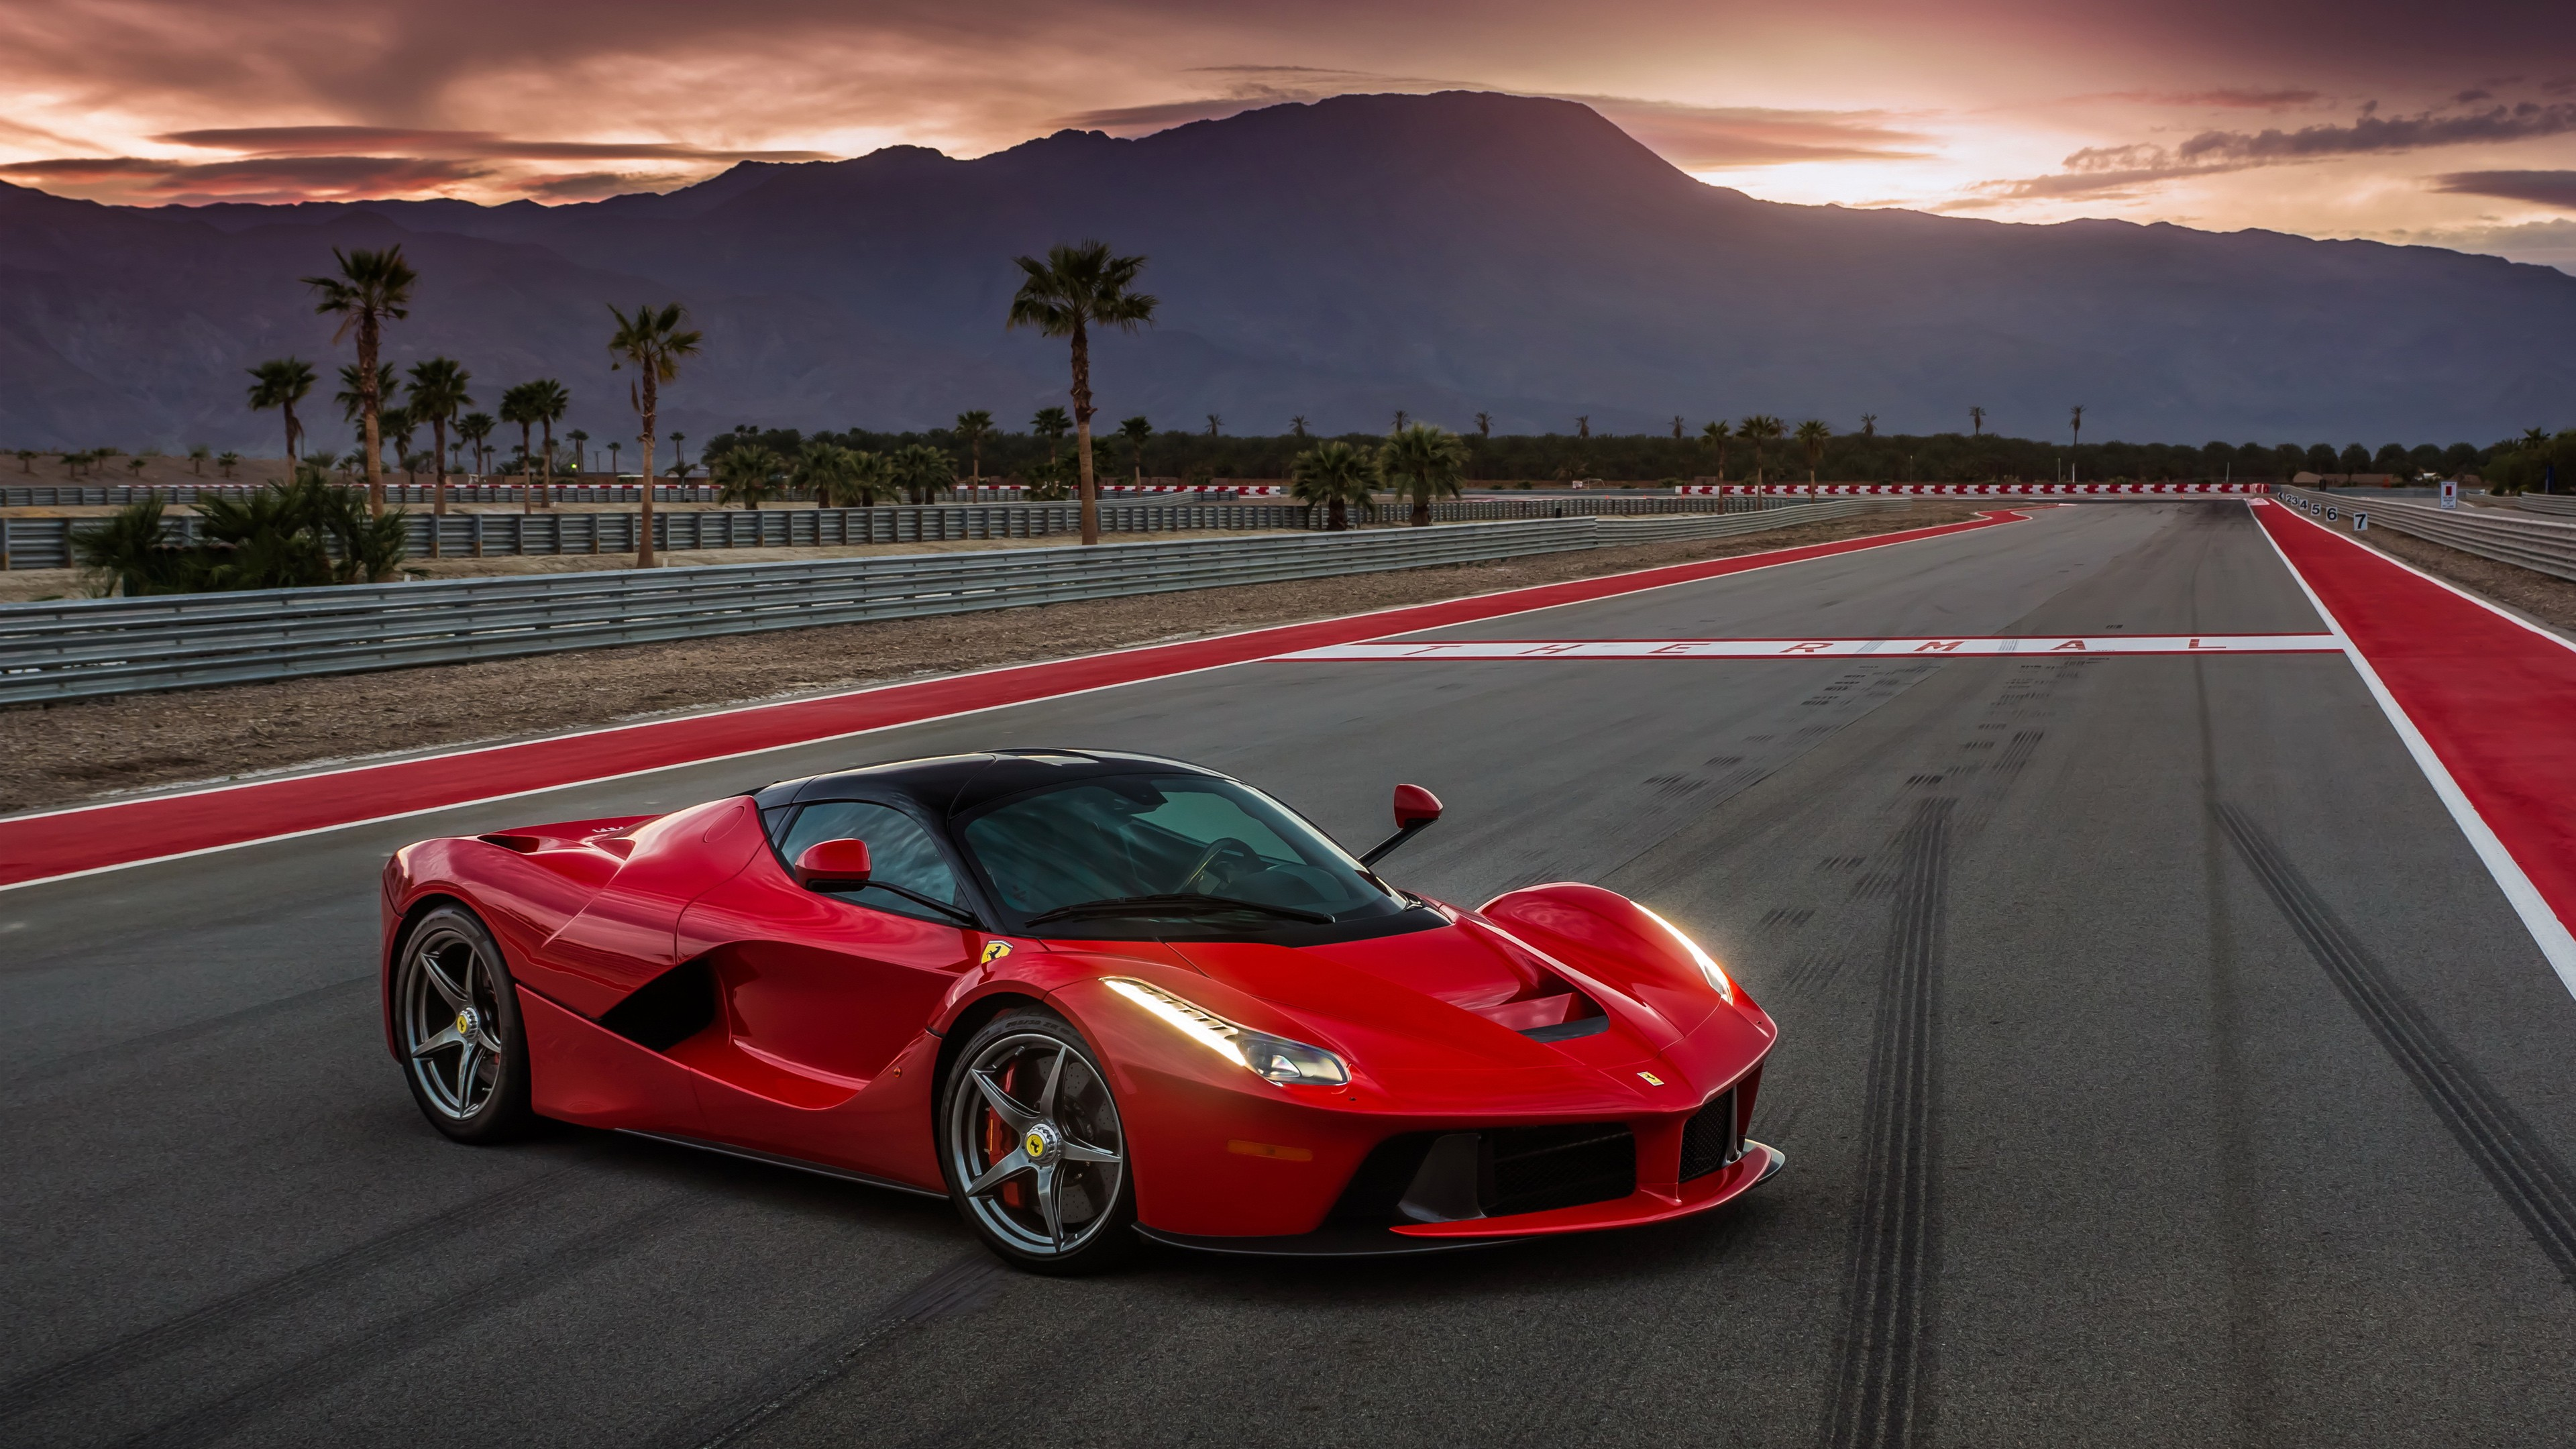 Ferrari Laferrari 4k Wallpaper Hd Car Wallpapers Id 6928